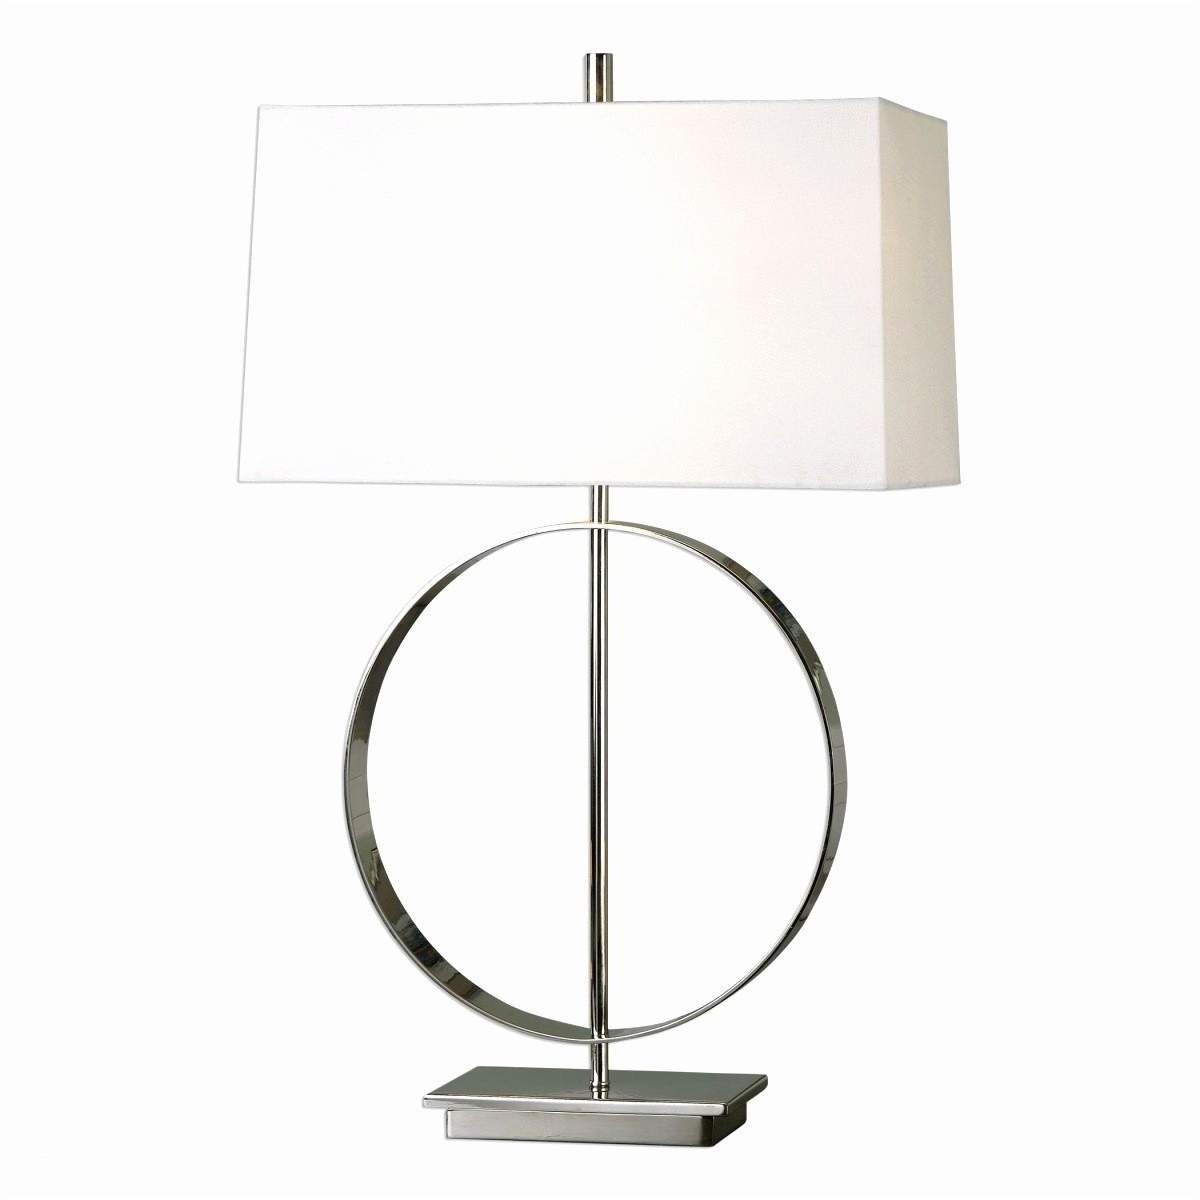 Black White Floor Vase Of 30 Fresh Modern Contemporary Floor Lamp Creative Lighting Ideas Throughout Architect Floor Lamp New Contemporary Table Lamp Free Table Lamps 0d Design Adesso Lamps